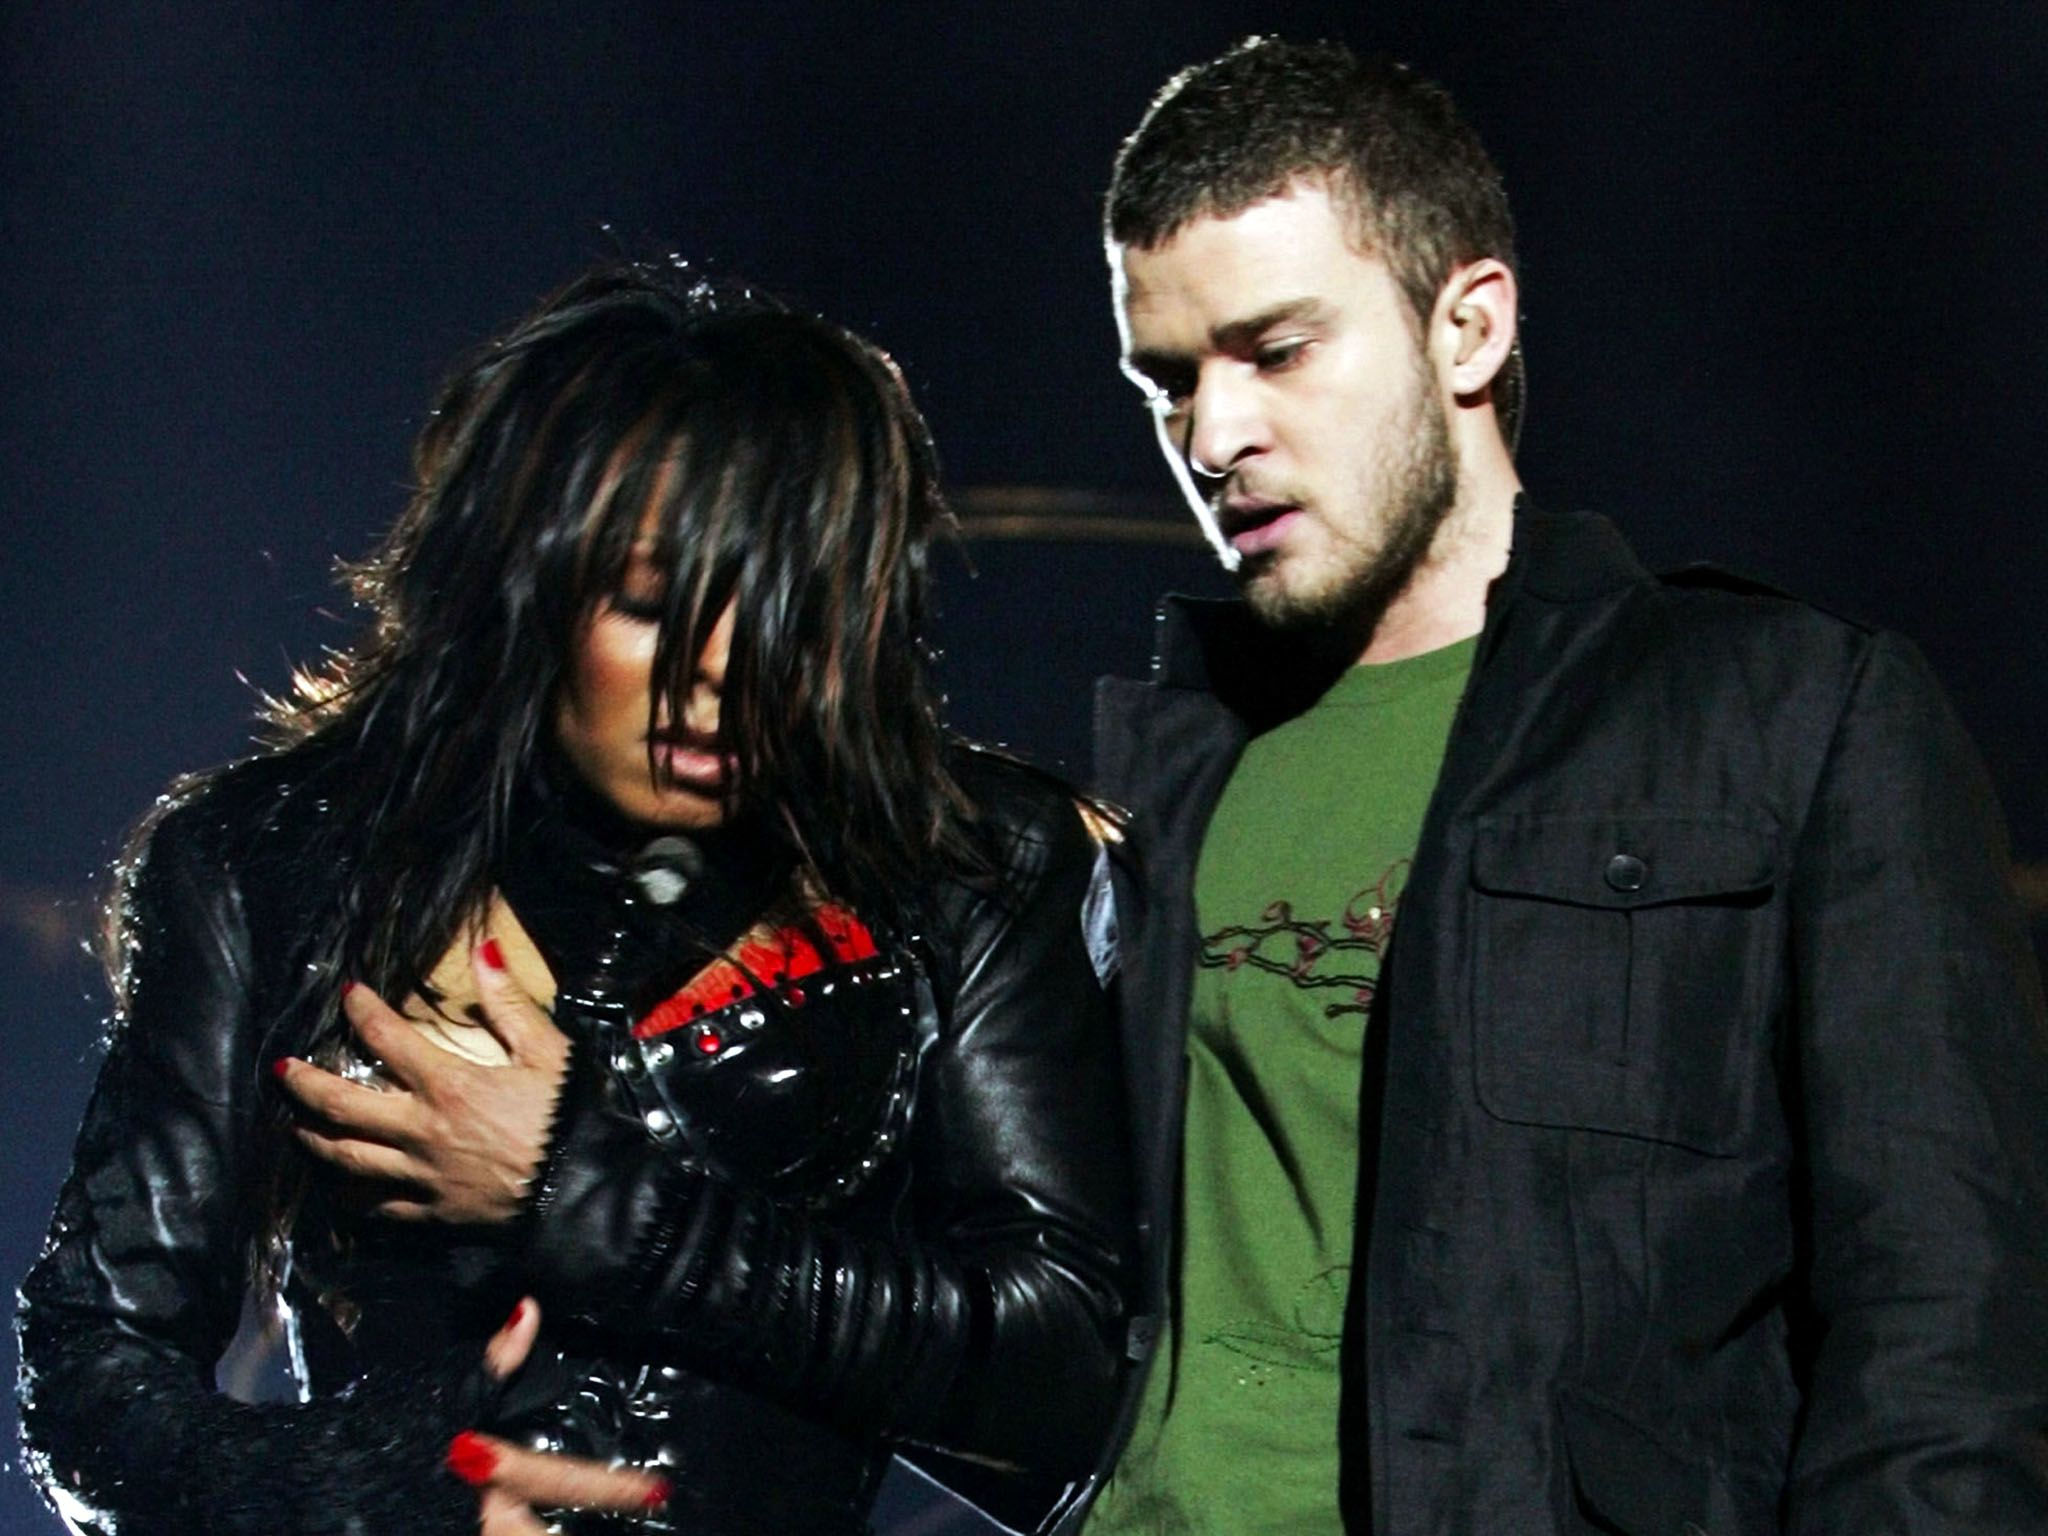 Houston, Texas - Janet Jackson (L) reacts after fellow singer Justin Timberlake ripped off one... [Photo of the day - اگوست 2015]